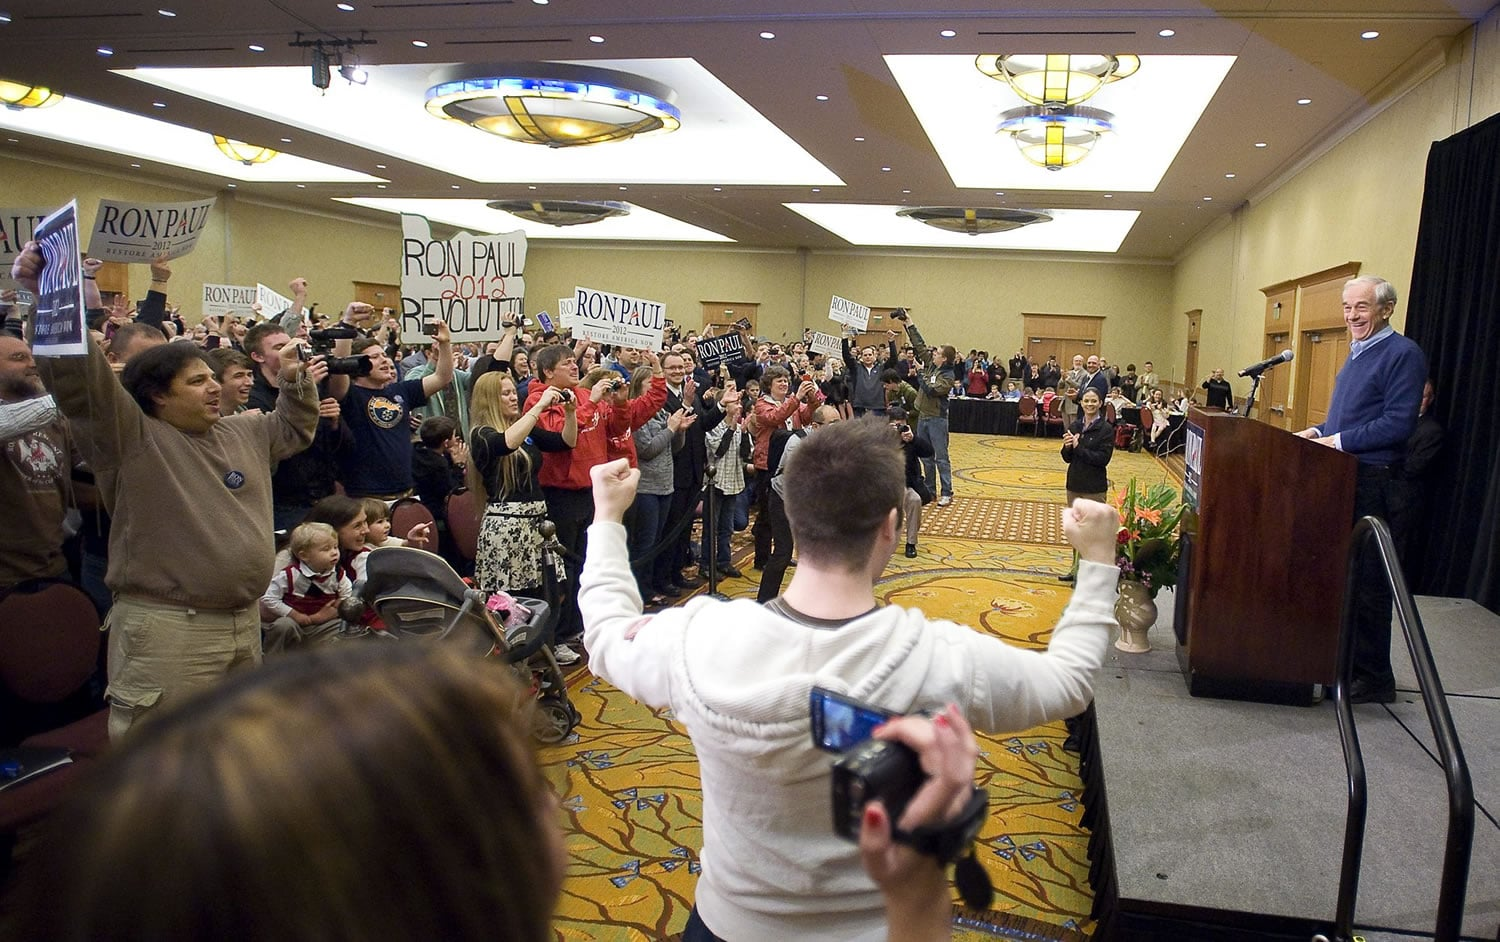 """Republican presidential candidate Ron Paul takes the stage during a rally at the Hilton Vancouver Washington on Thursday. The crowd waved signs and chanted """"President Paul"""" to show their support."""